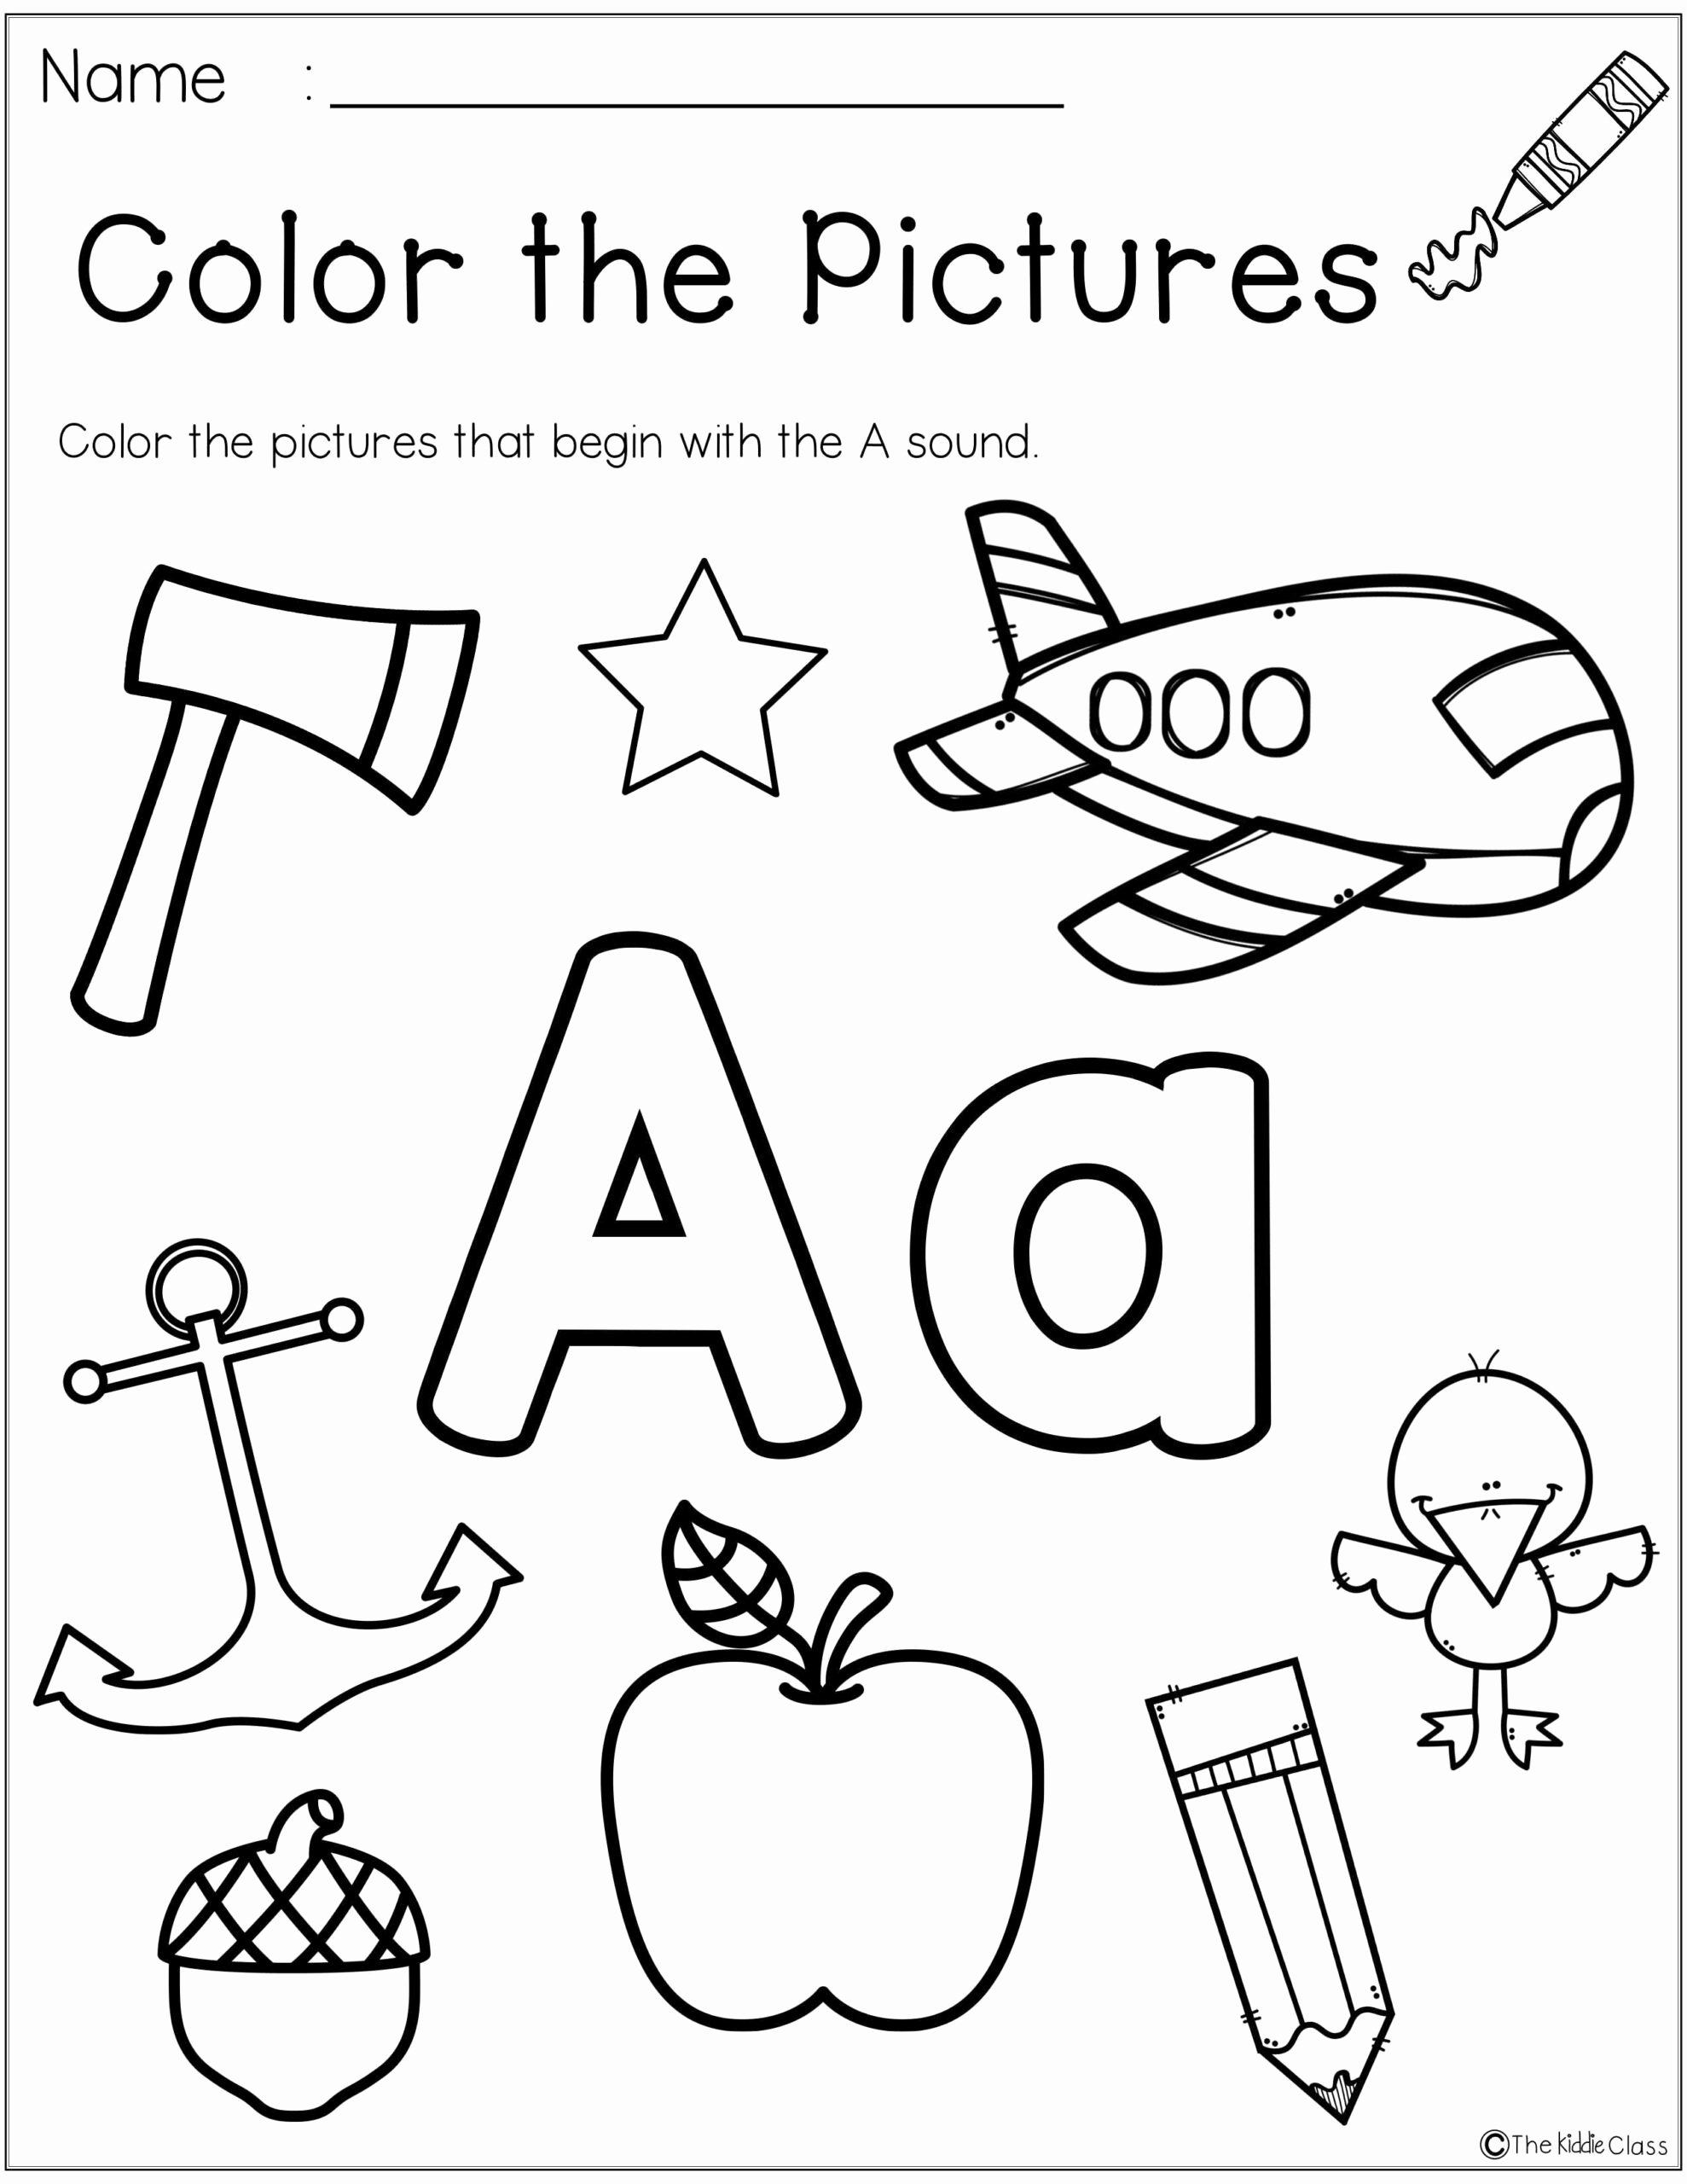 Free Printable Letter A Worksheets for Preschoolers top Worksheets Letter Worksheets for Preschool Printable and